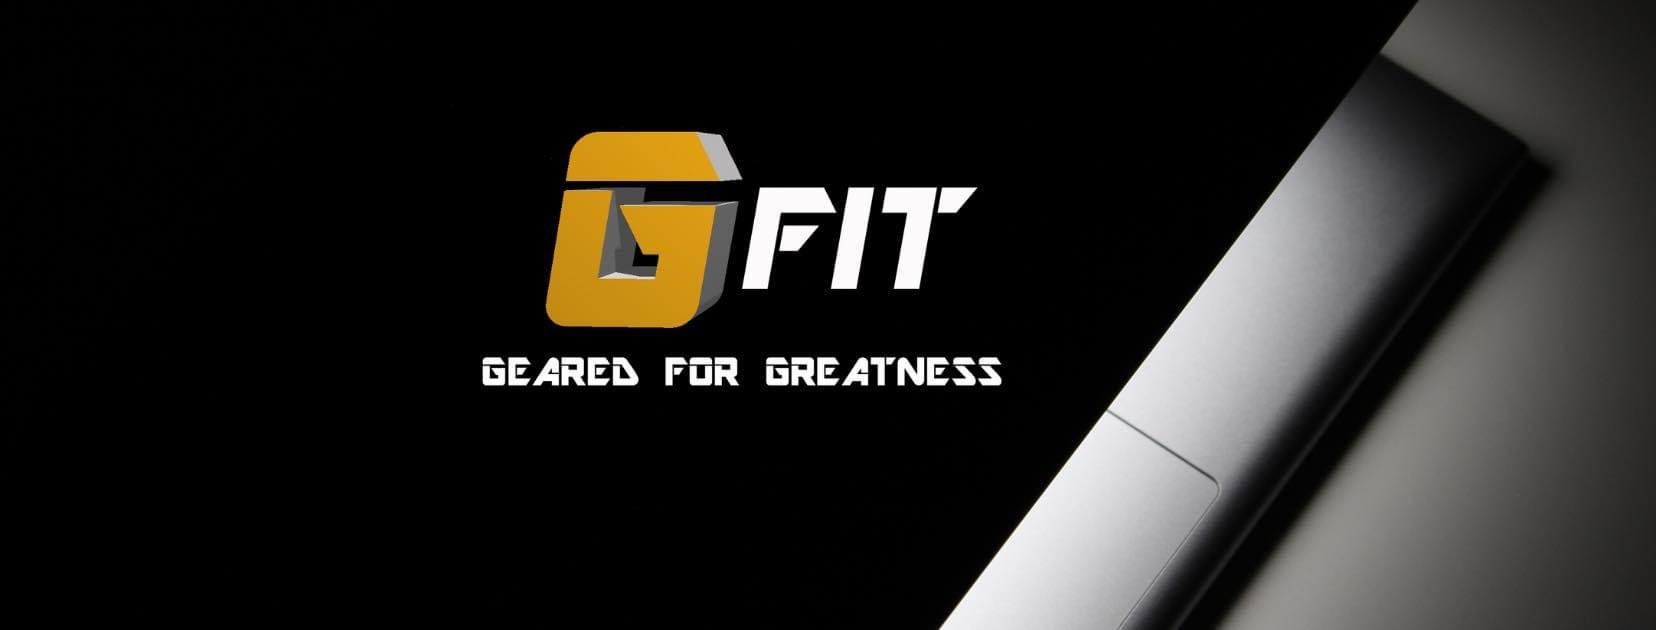 GFit Geared For Greatness